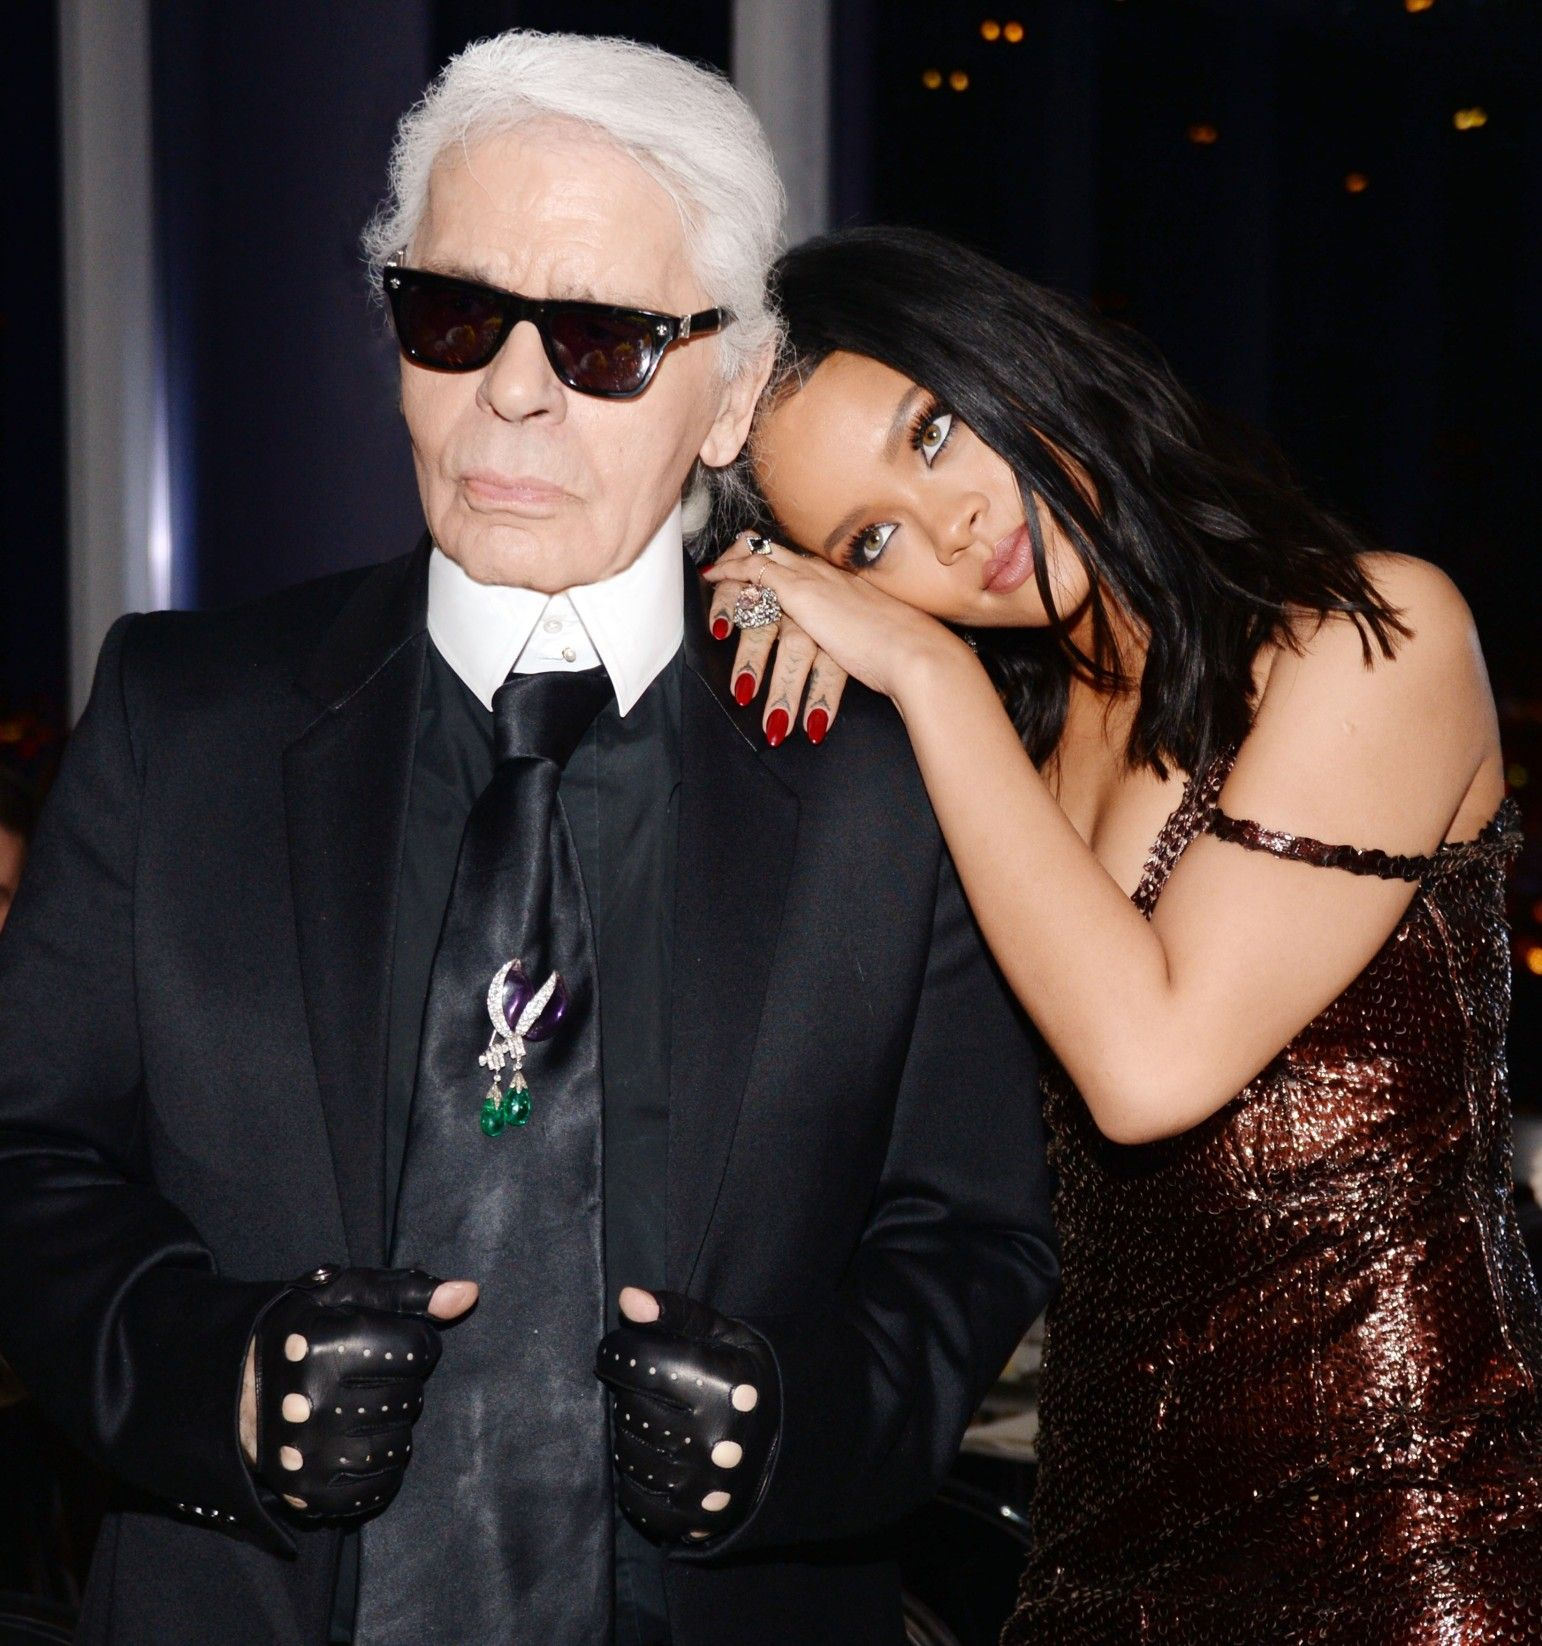 29281c1de5 New York Fashion Week s Party Animals - Karl Lagerfeld and Rihanna